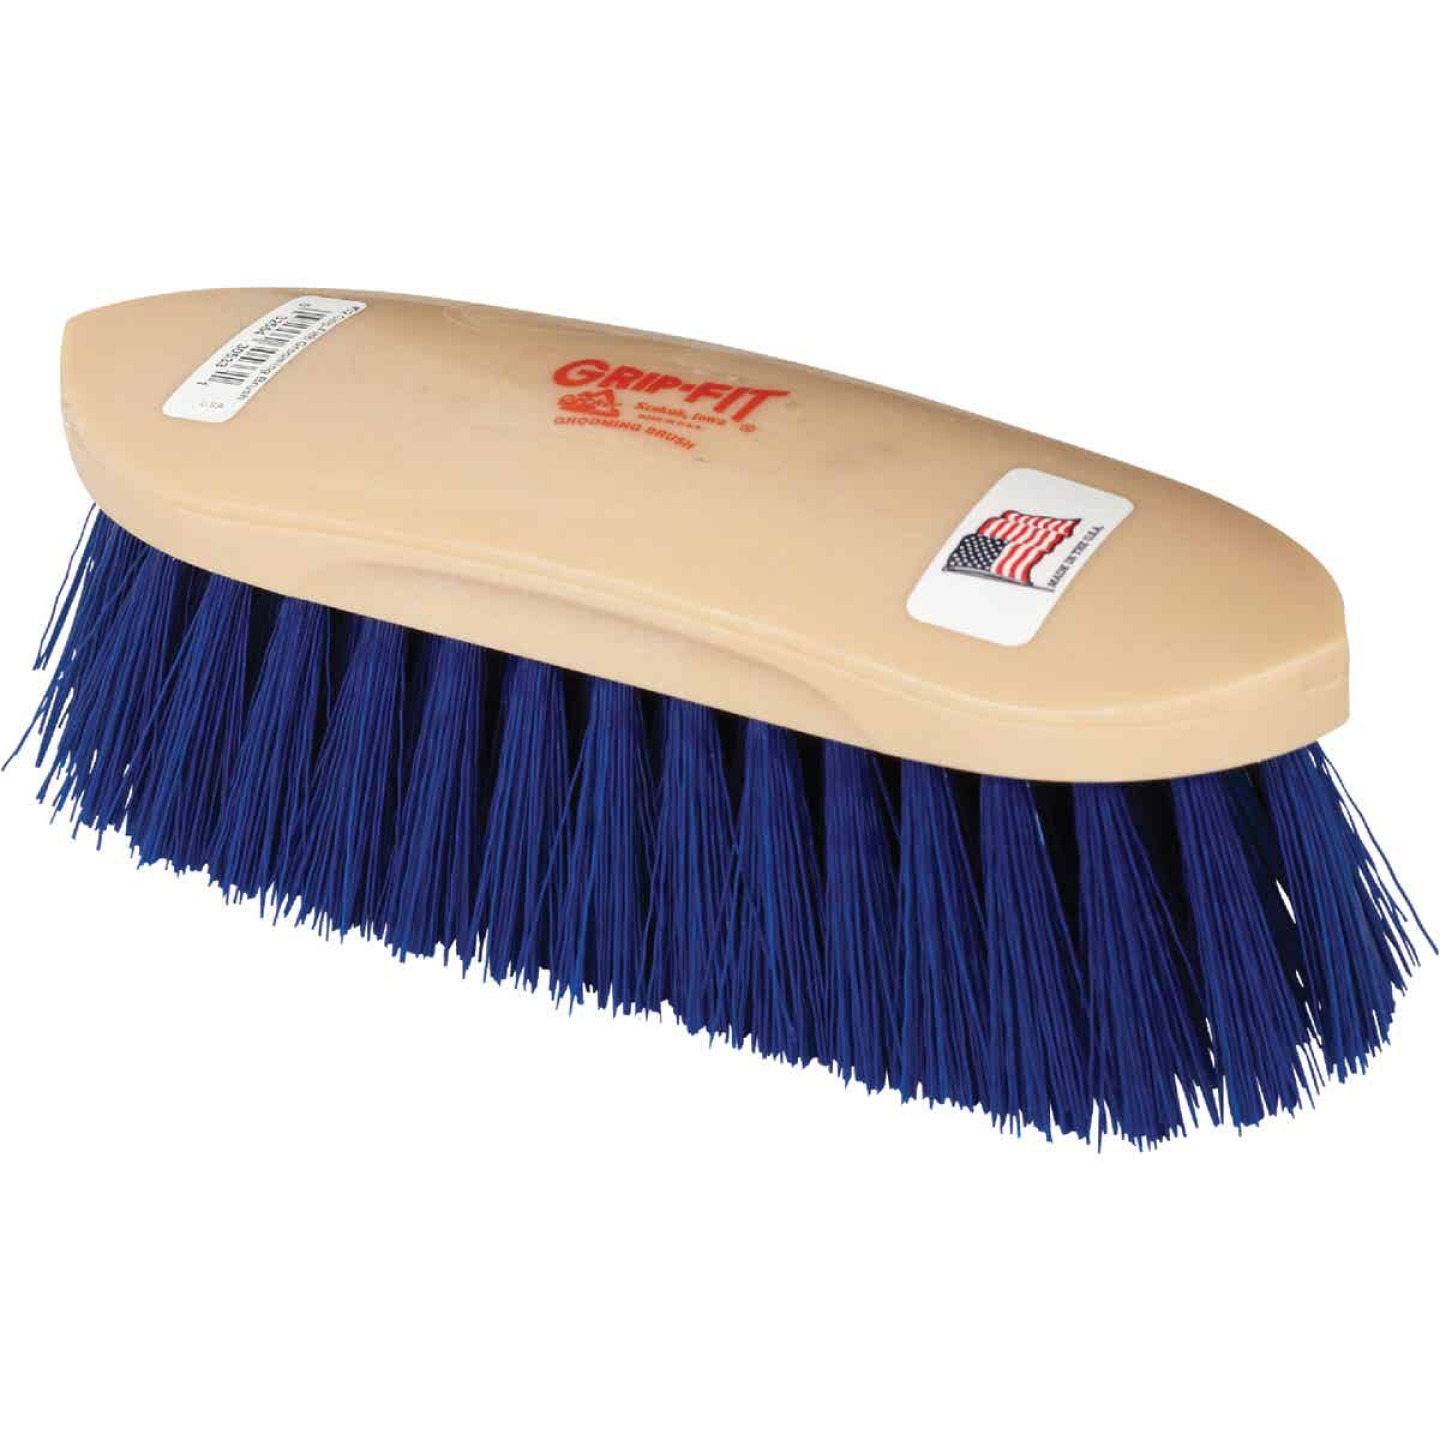 Decker Crimped Synthetic Bristles 2 In. Trim Size Medium Soft Grooming Brush Image 1